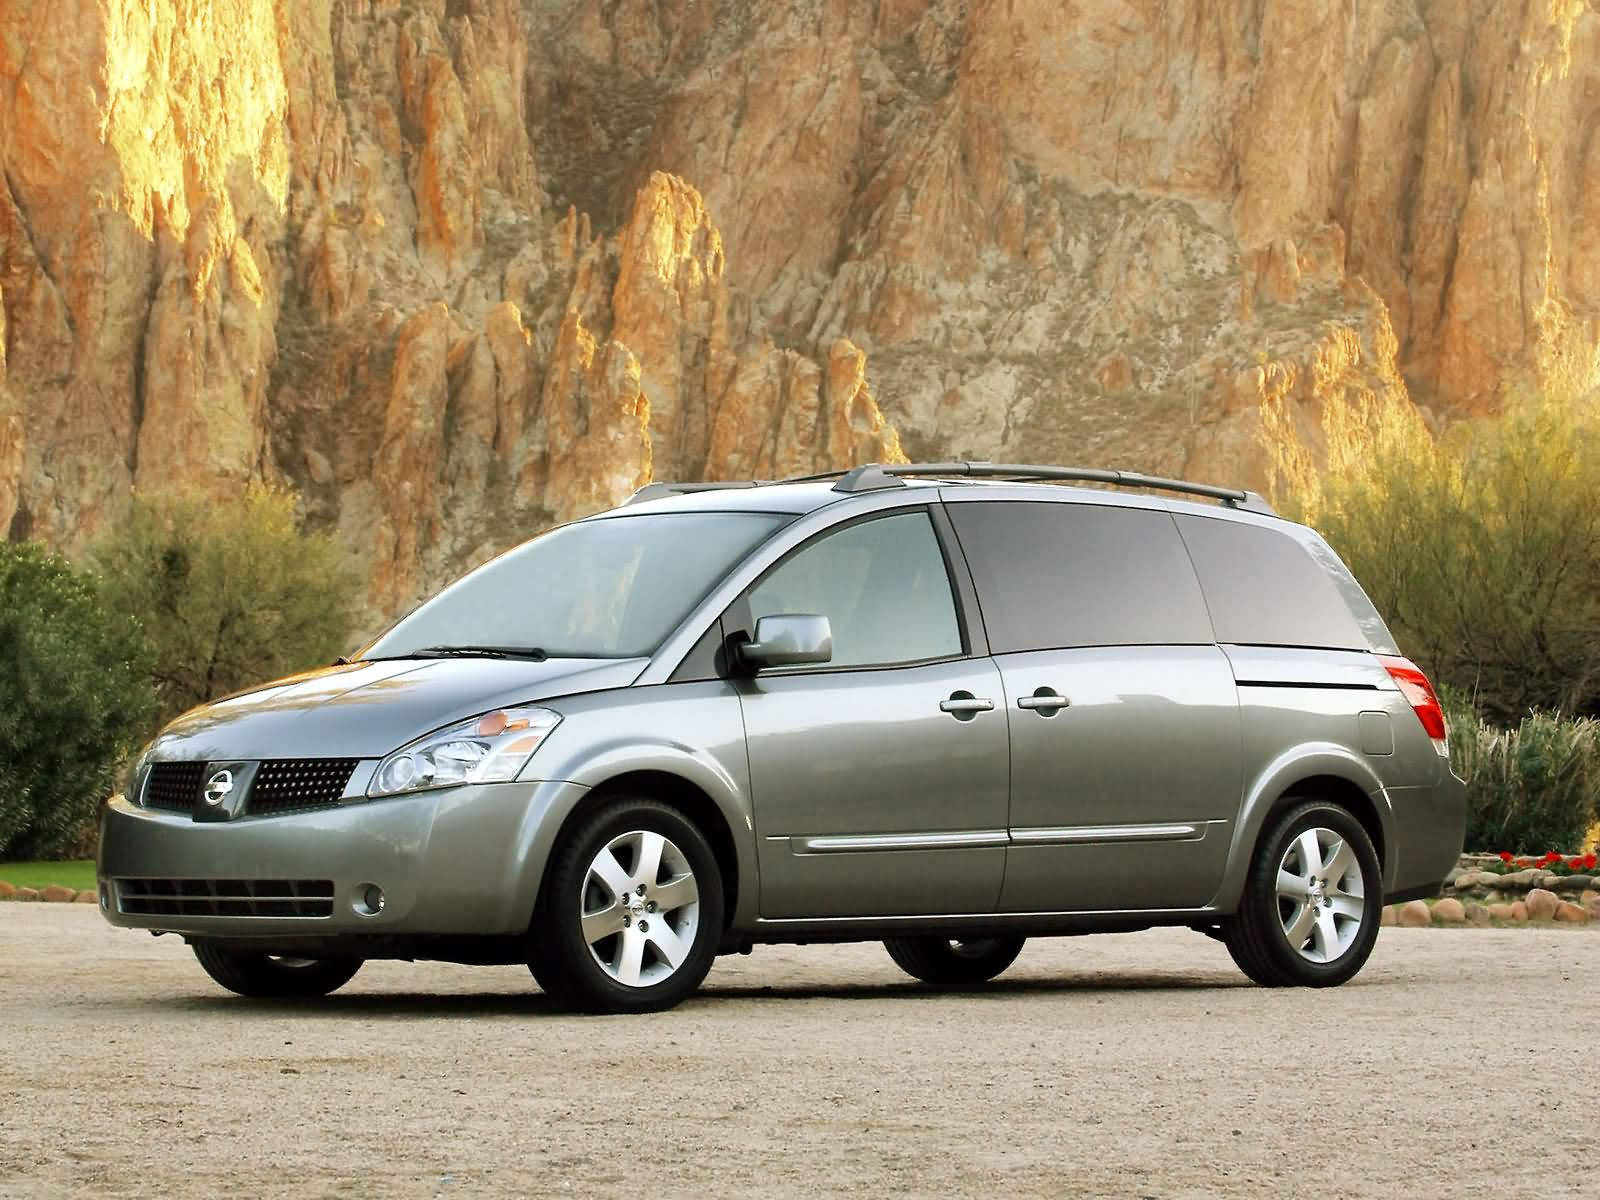 Nissan Quest photo 6818